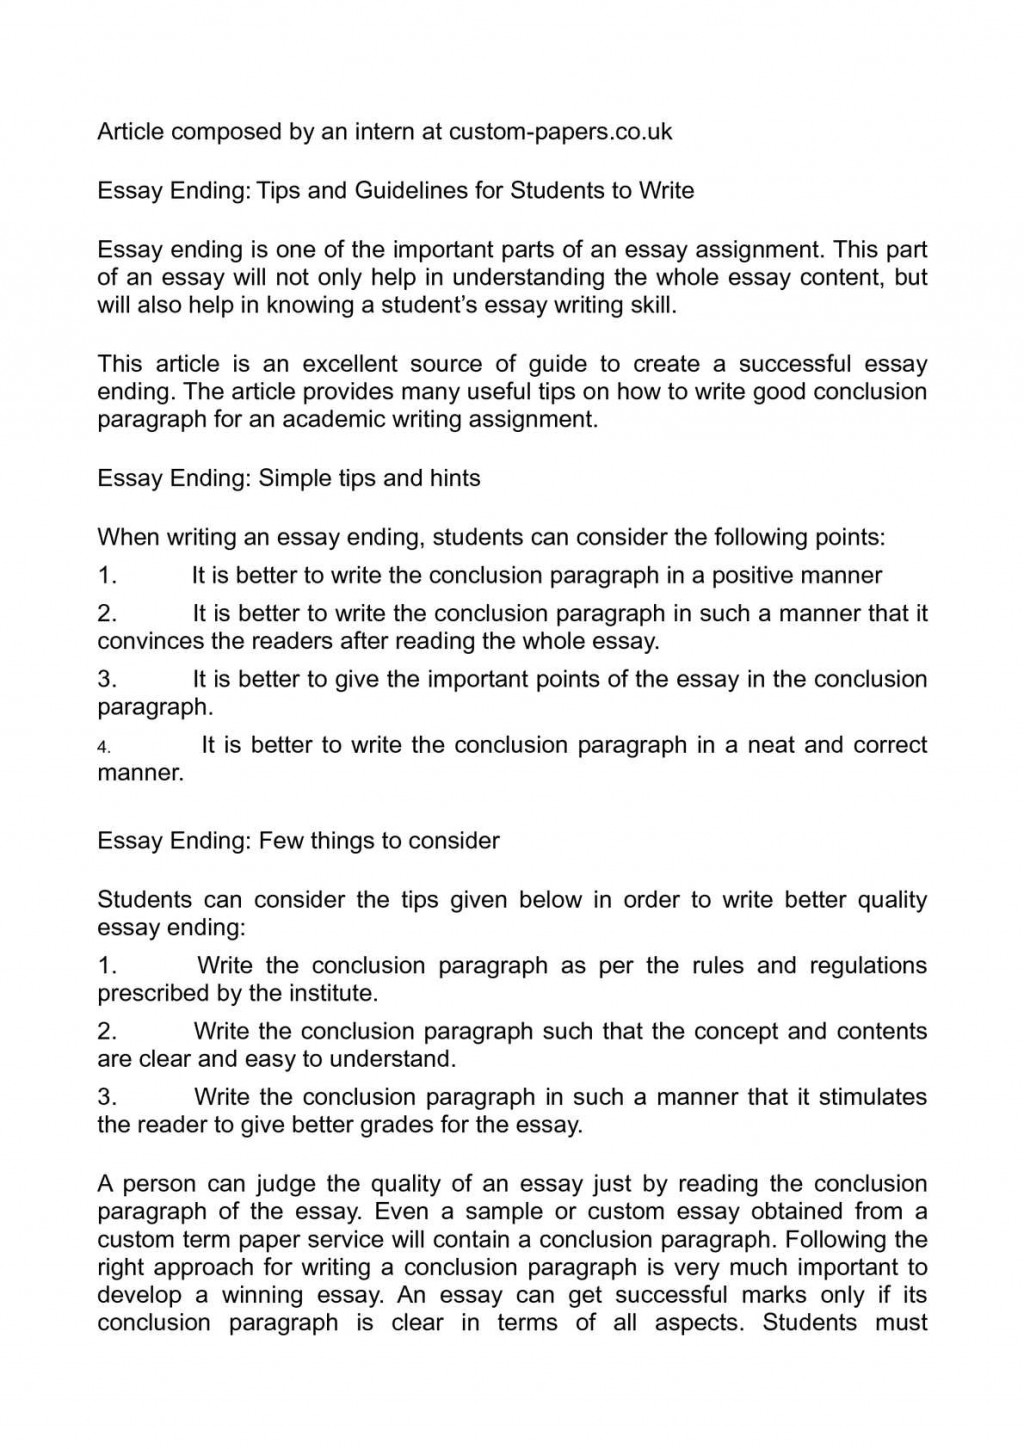 001 Parts Of An Essay Ending Tips And Guidelines For Students To Write Writing Persuasi Pdf Three Persuasive Stupendous Quizlet A Ppt The Introduction Academic Large